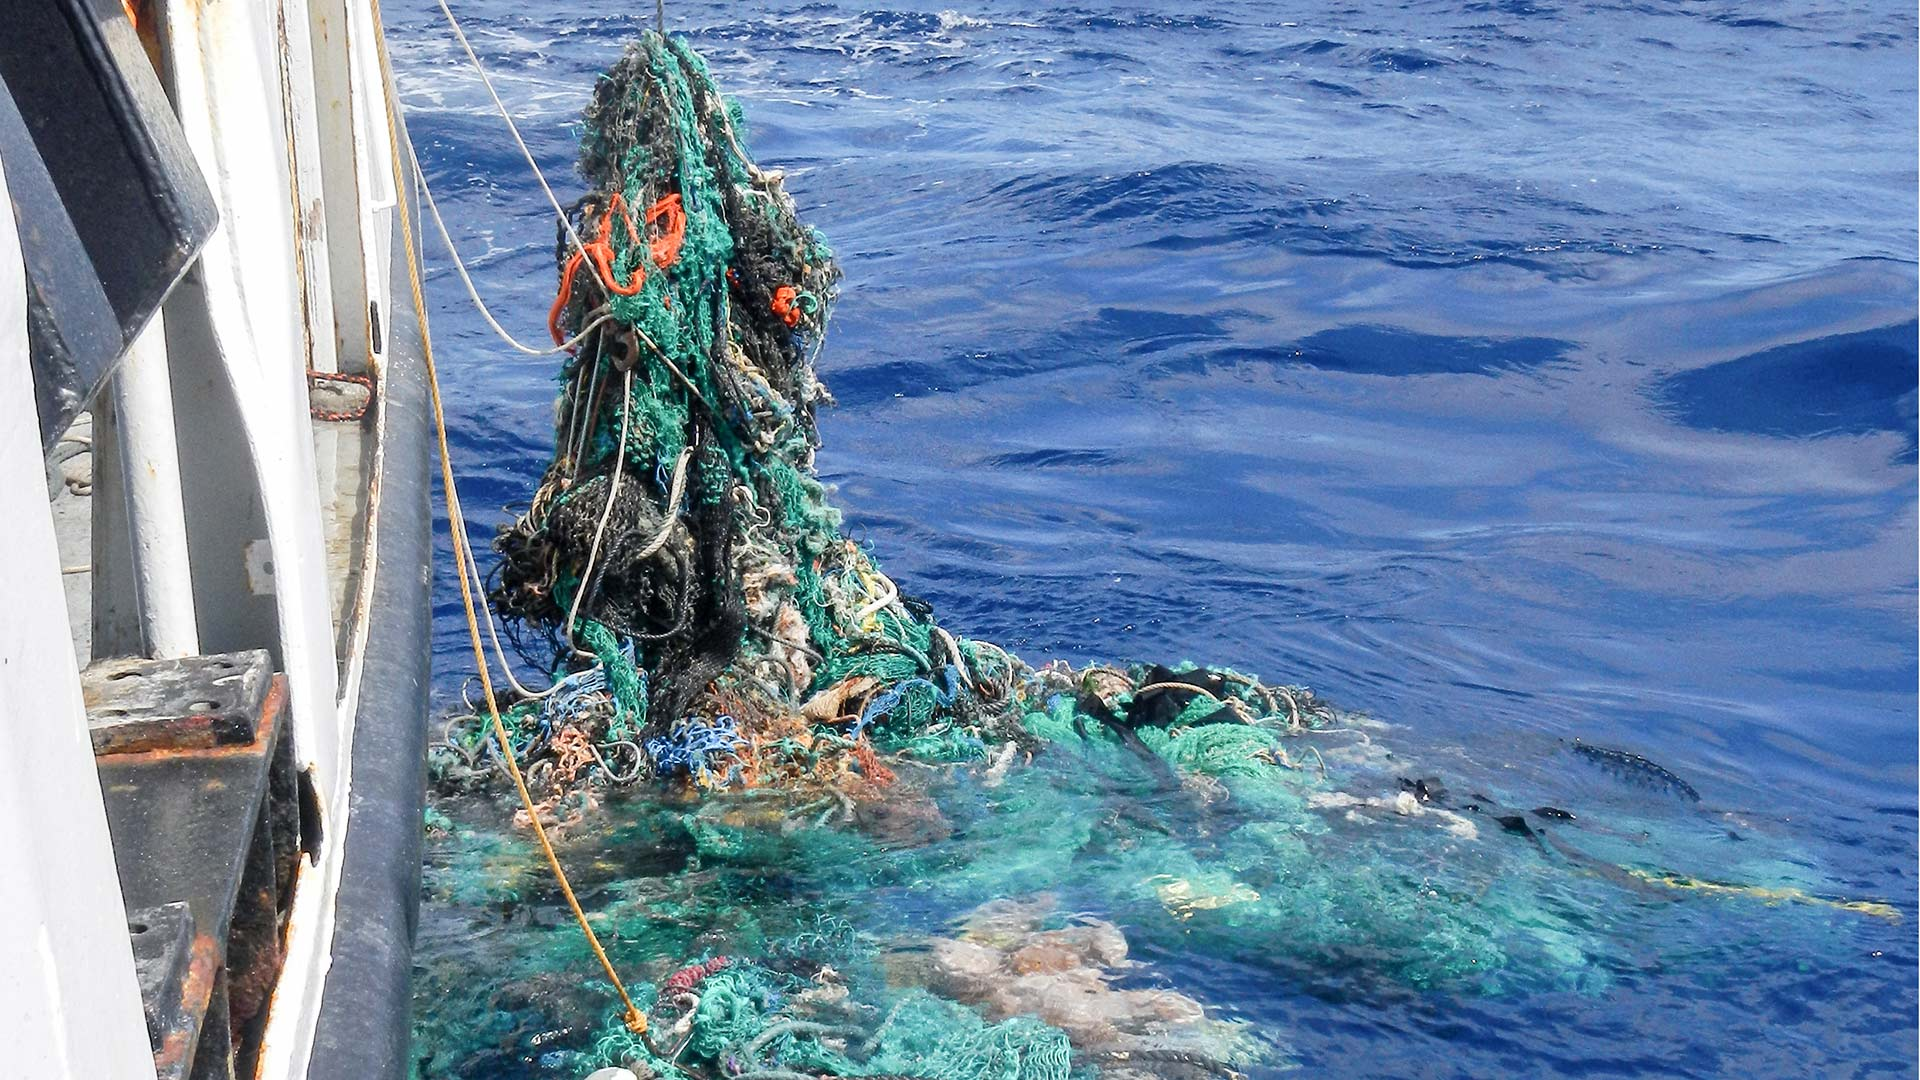 Researchers retrieve a fishing net from the Pacific Ocean in 2015.